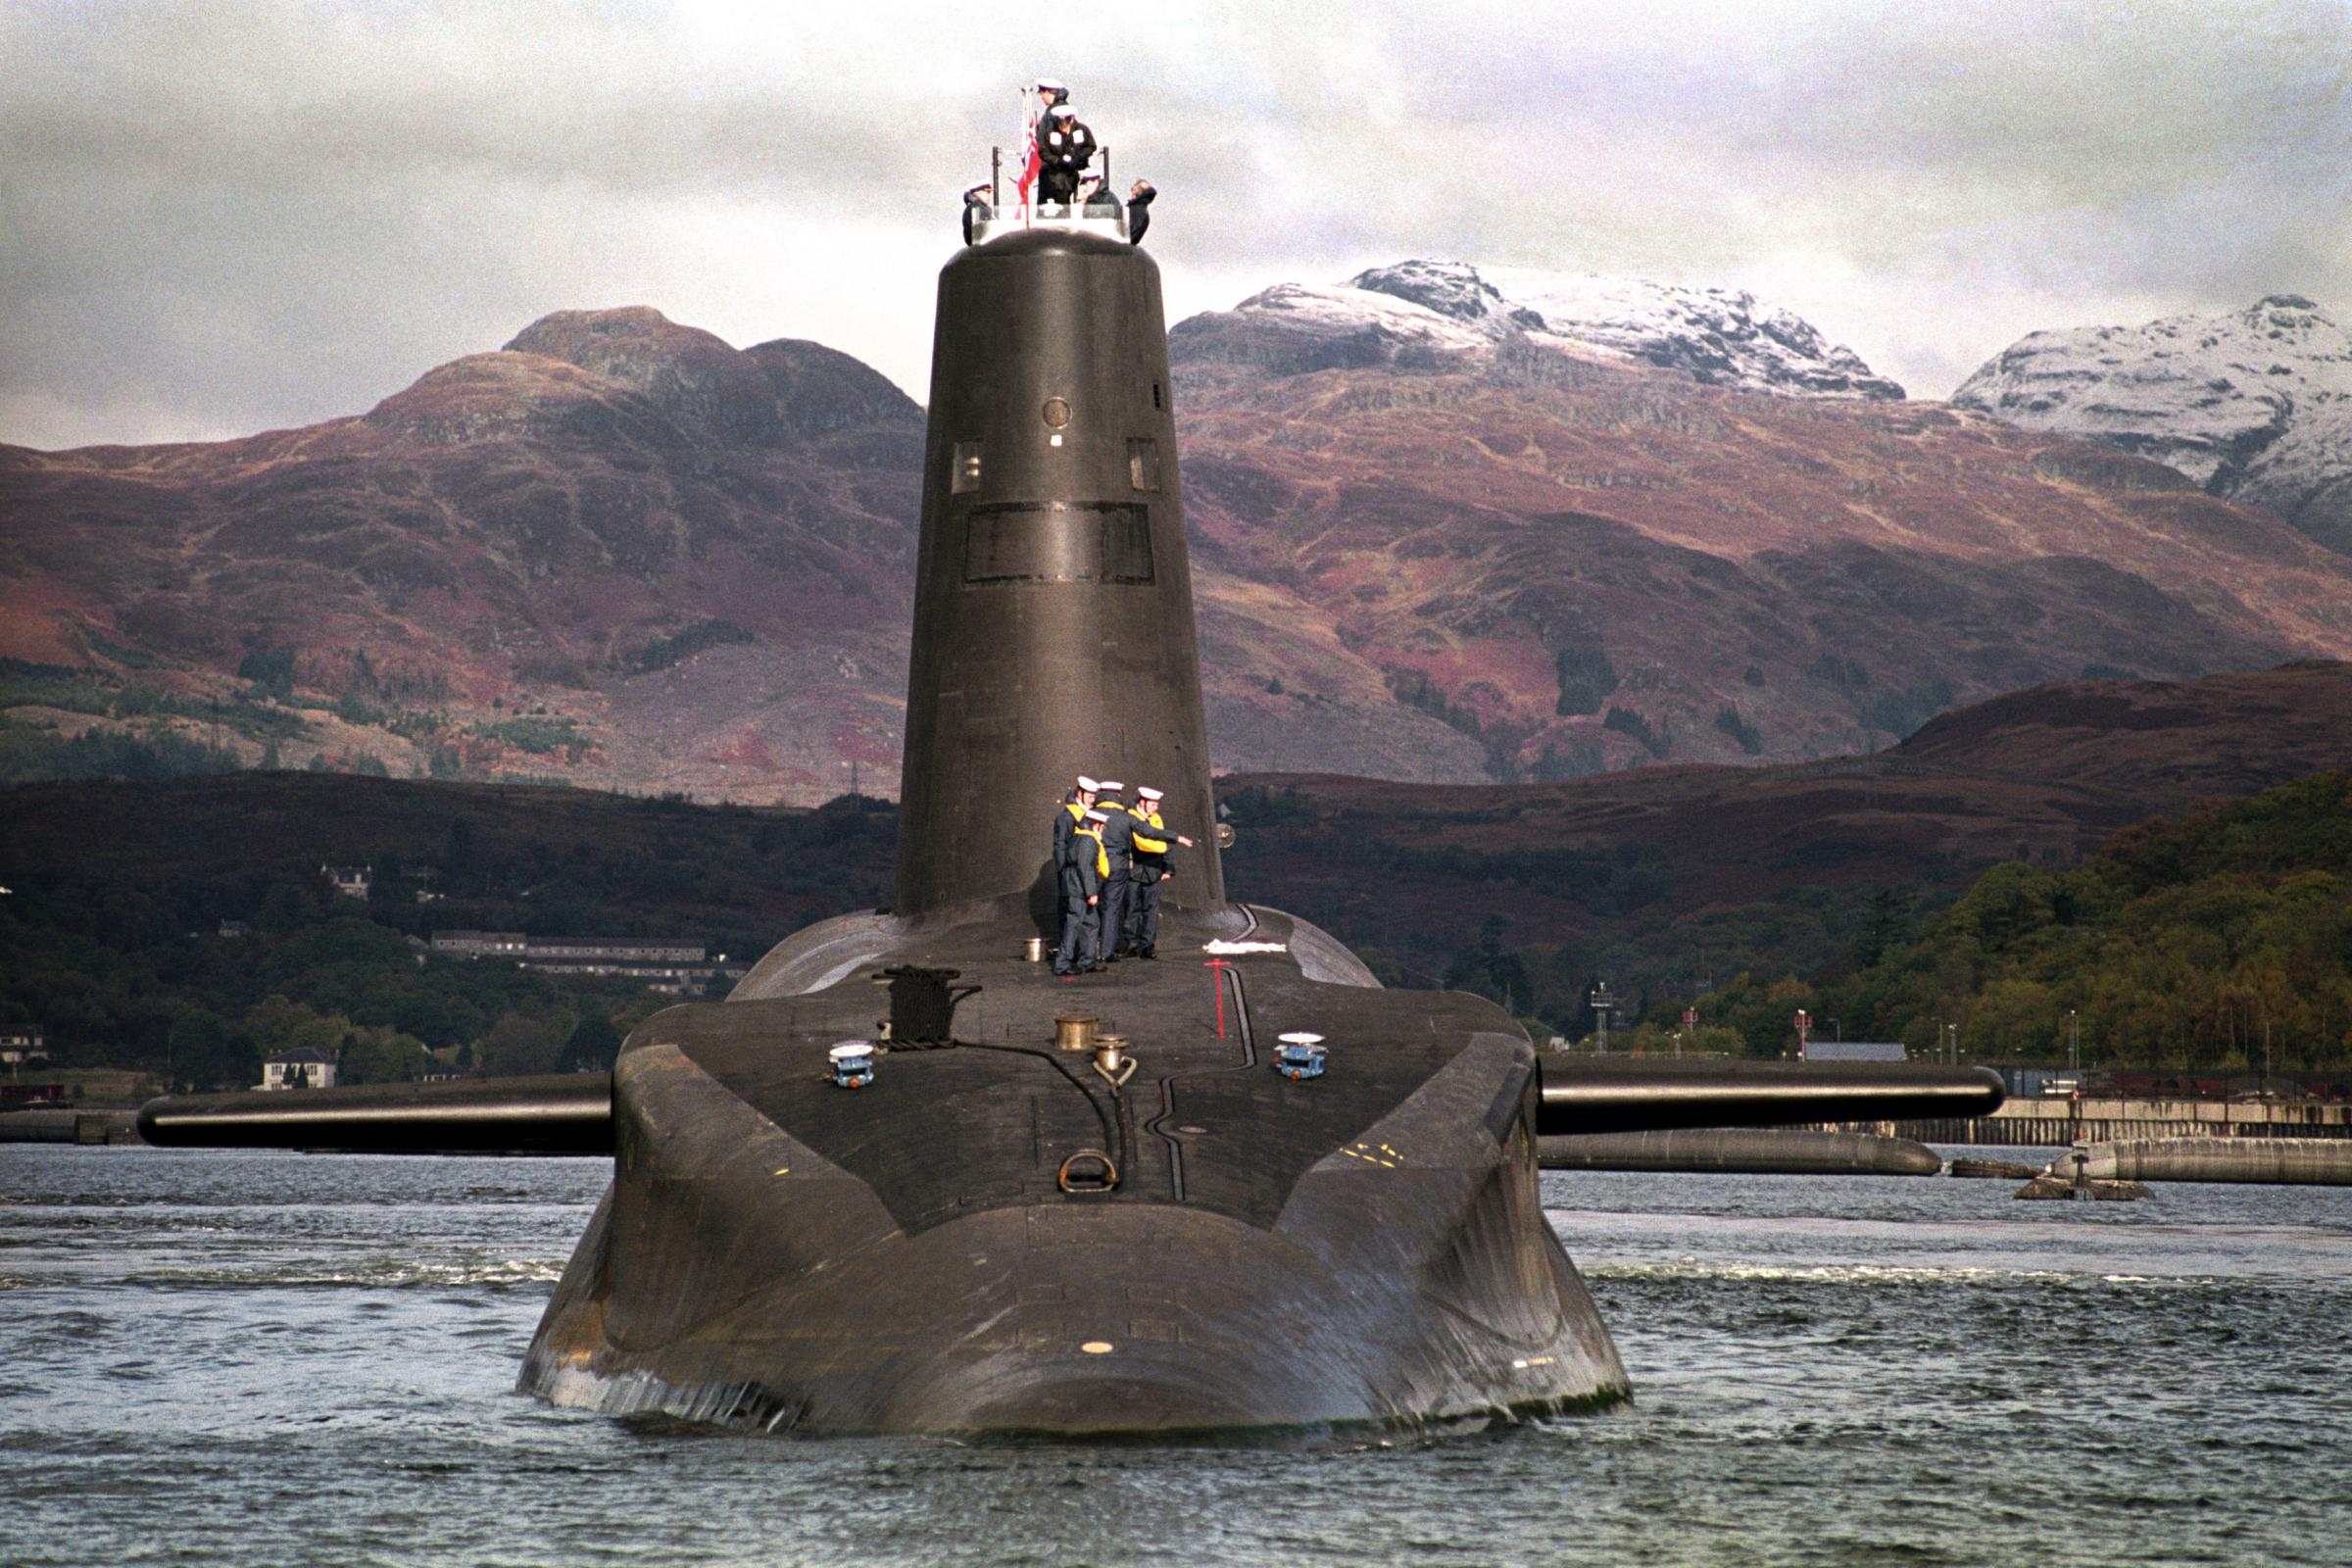 File photo dated 30/01/02 of the Royal Navy's 16,000 ton Trident-class nuclear submarine Vanguard, as Labour's annual conference is set to debate calls for the UK's Trident nuclear weapons system to be scrapped. PRESS ASSOCIATION Photo. Issue